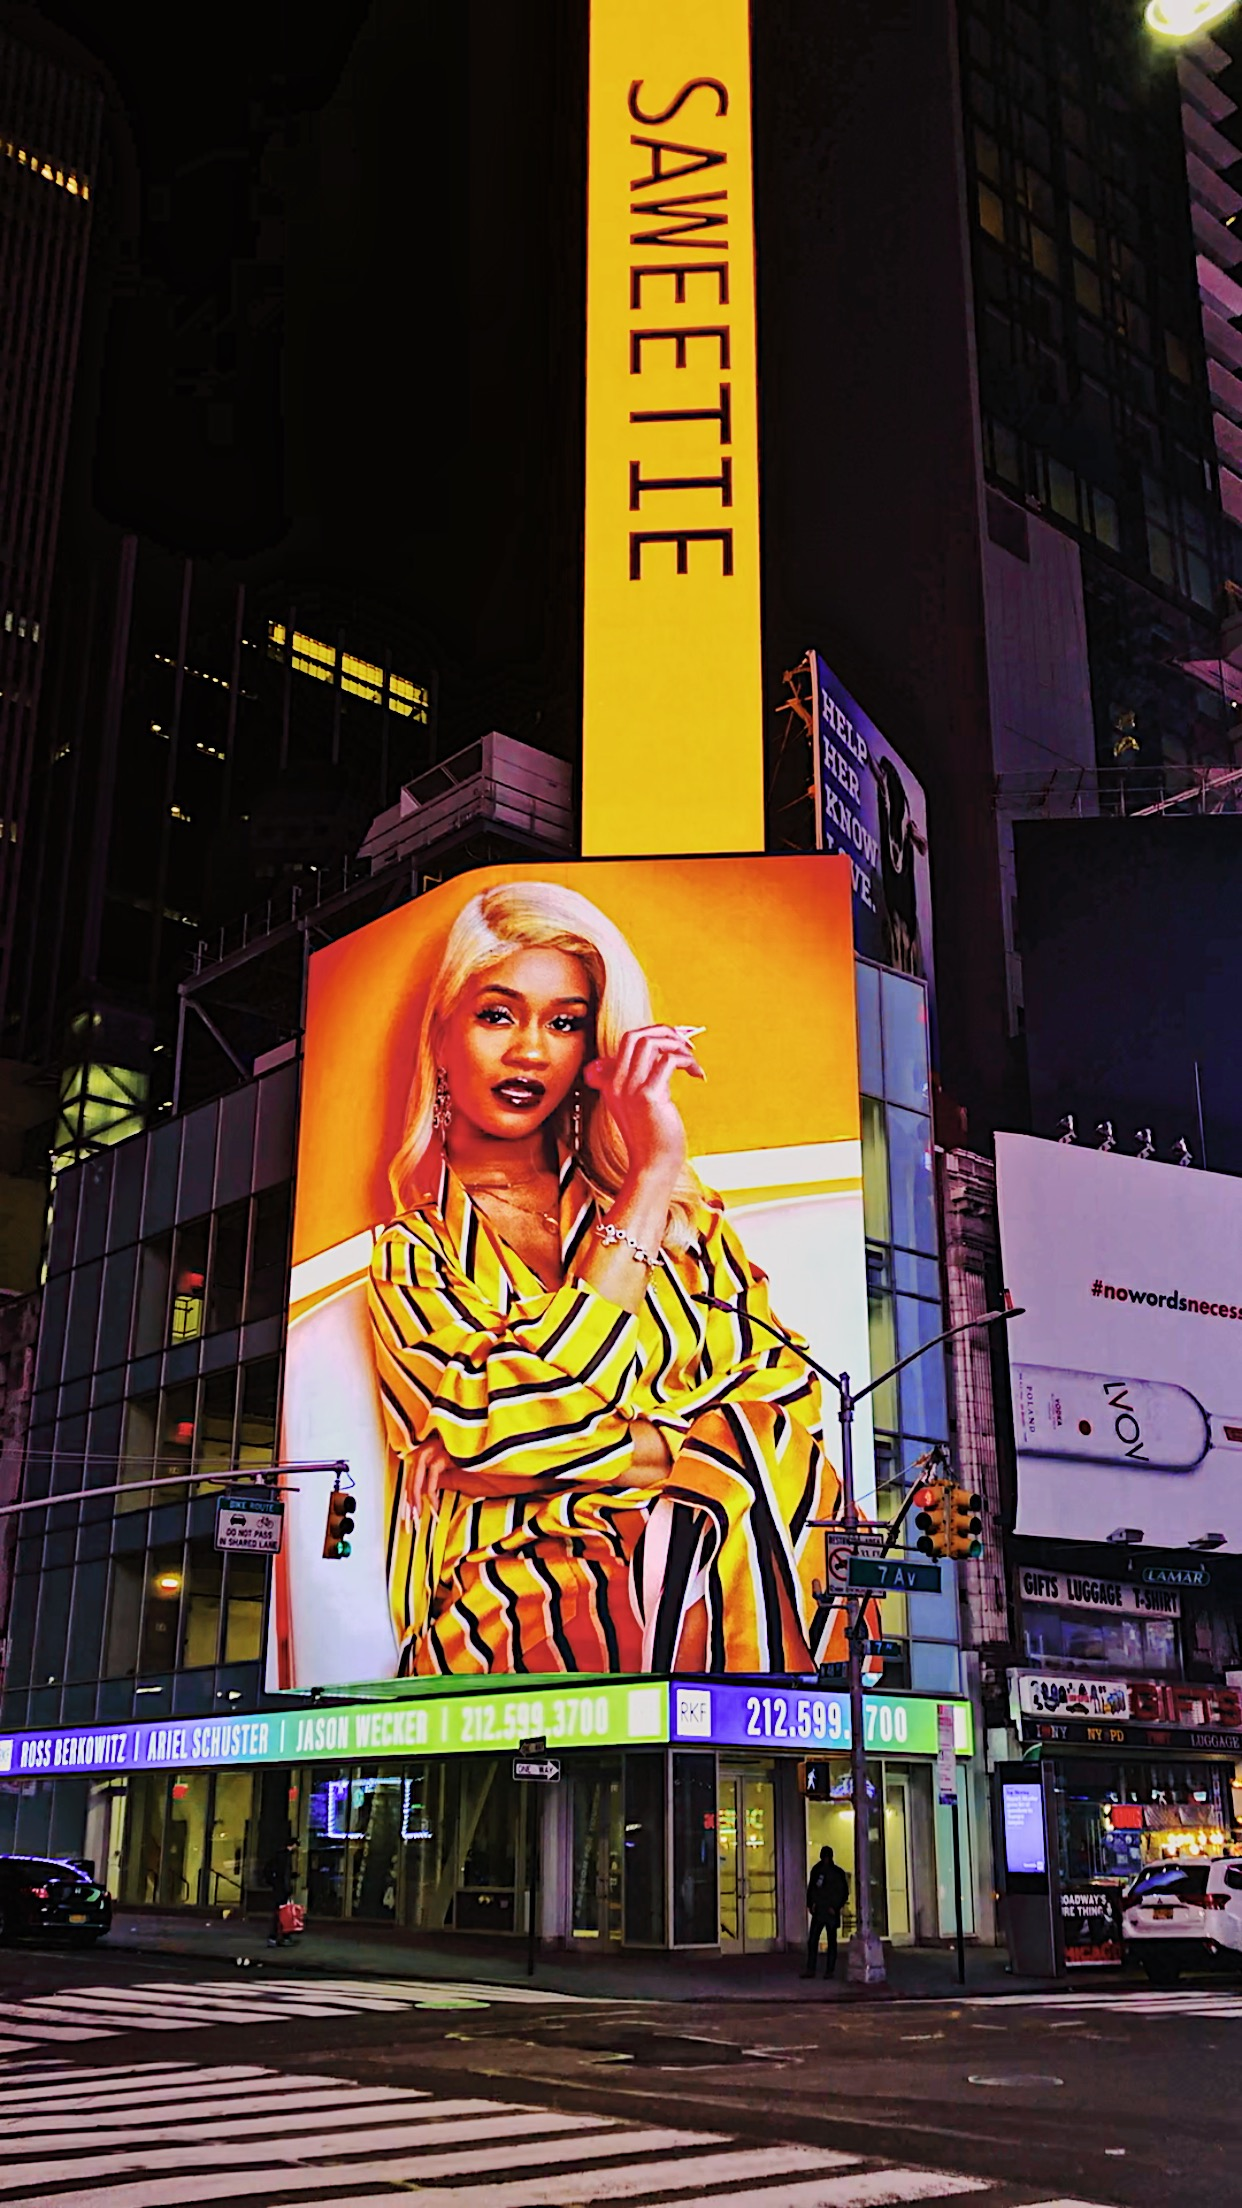 TIMES SQUARE DISPLAY - SAWEETIE'S NEW RELEASED ALBUM